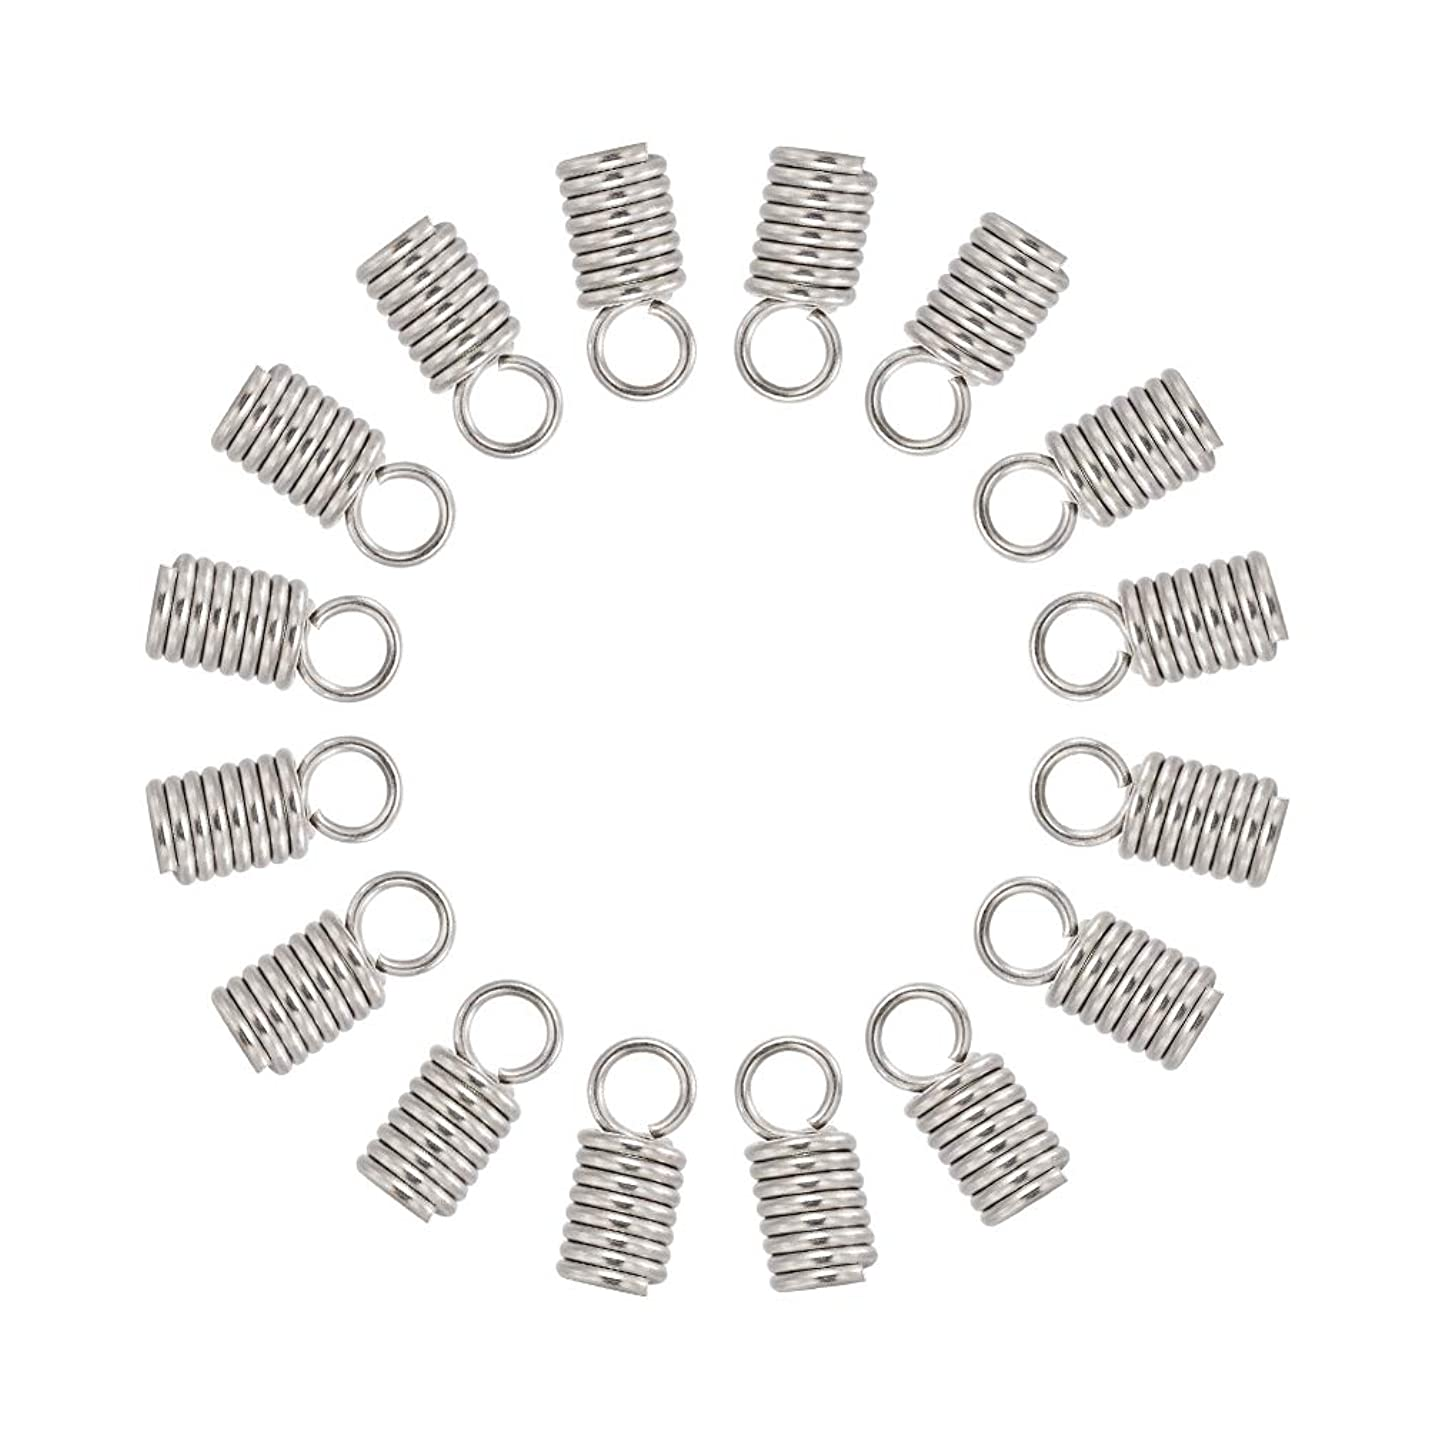 Pandahall 50pcs 304 Stainless Steel Tube Coil Cord Ends Cord Cap Tip Leather Cord Ends Caps Necklace Spring Fastener Crimp Clasp Jewelry Making 11x5mm pdpxbqteekepn420